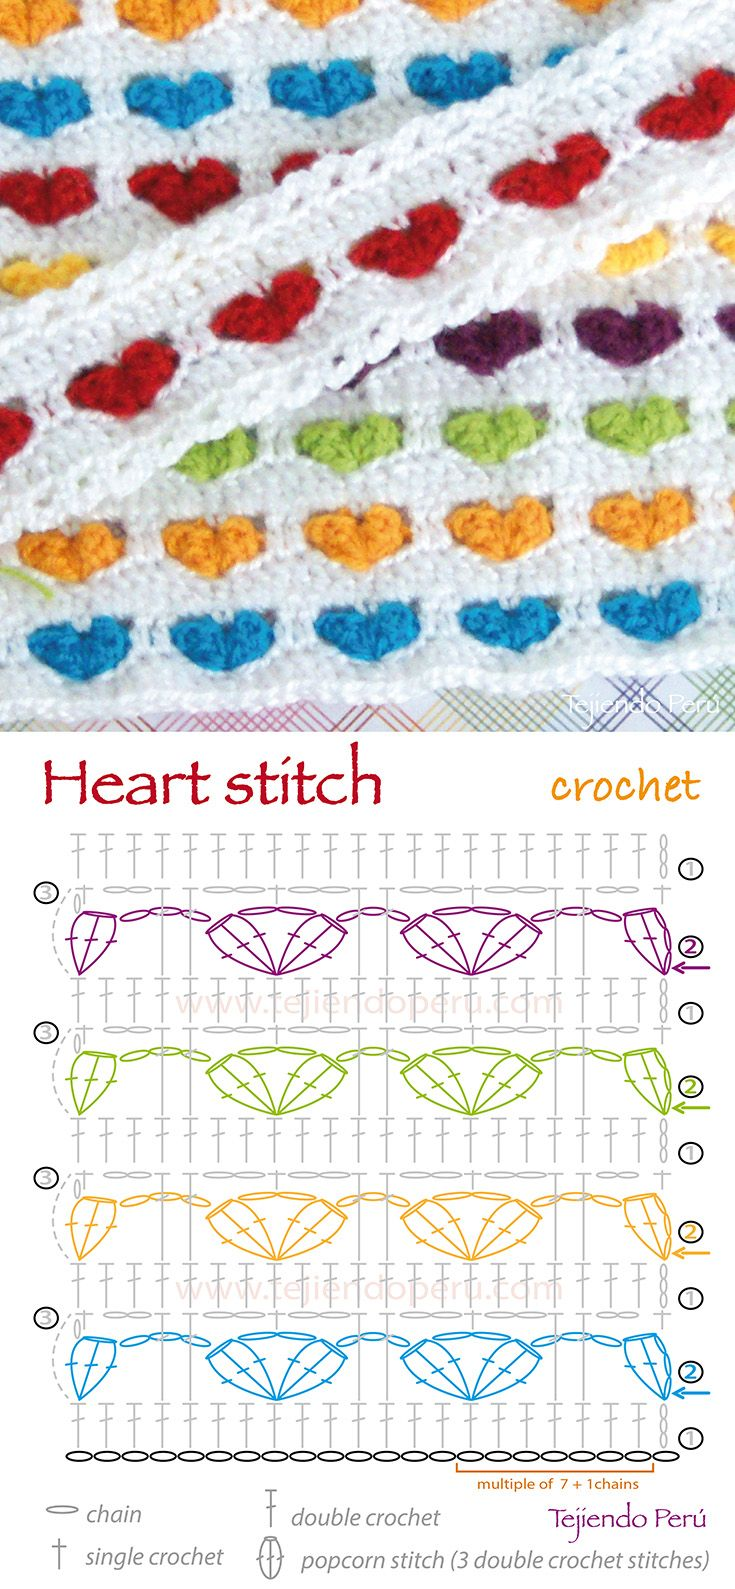 Crochet heart stitch pattern chart